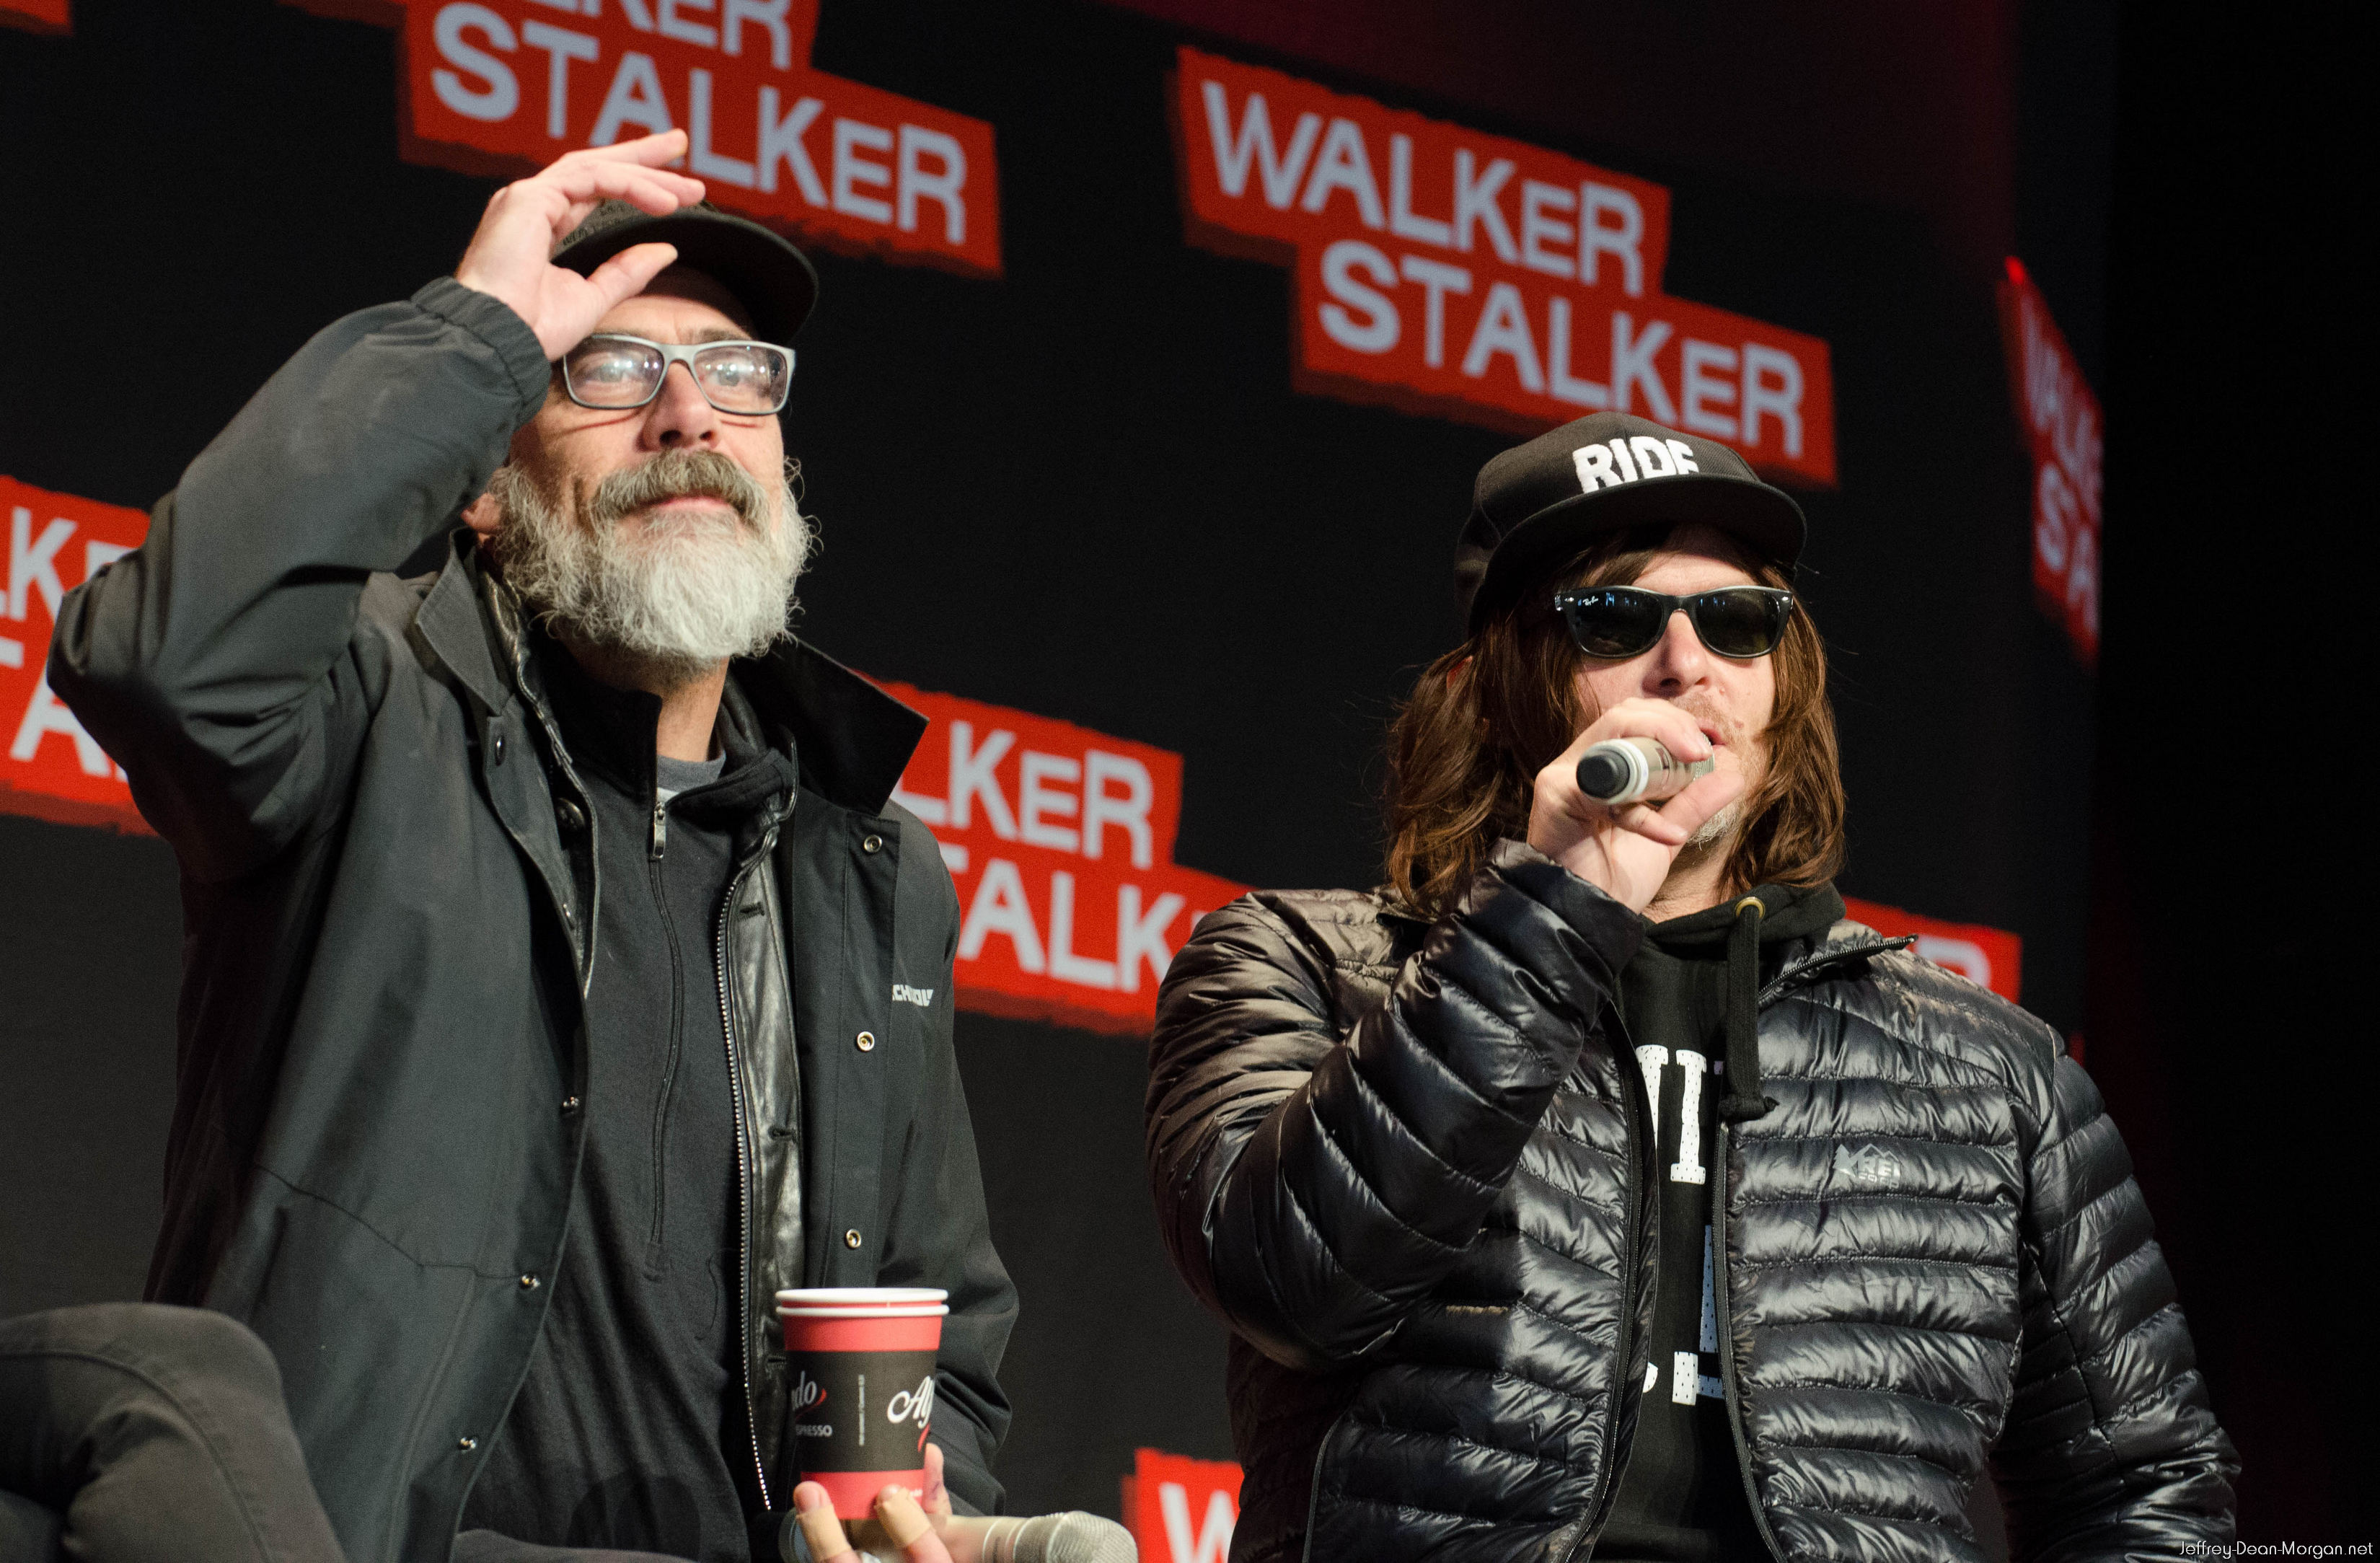 walker stalker convention mannheim 2018